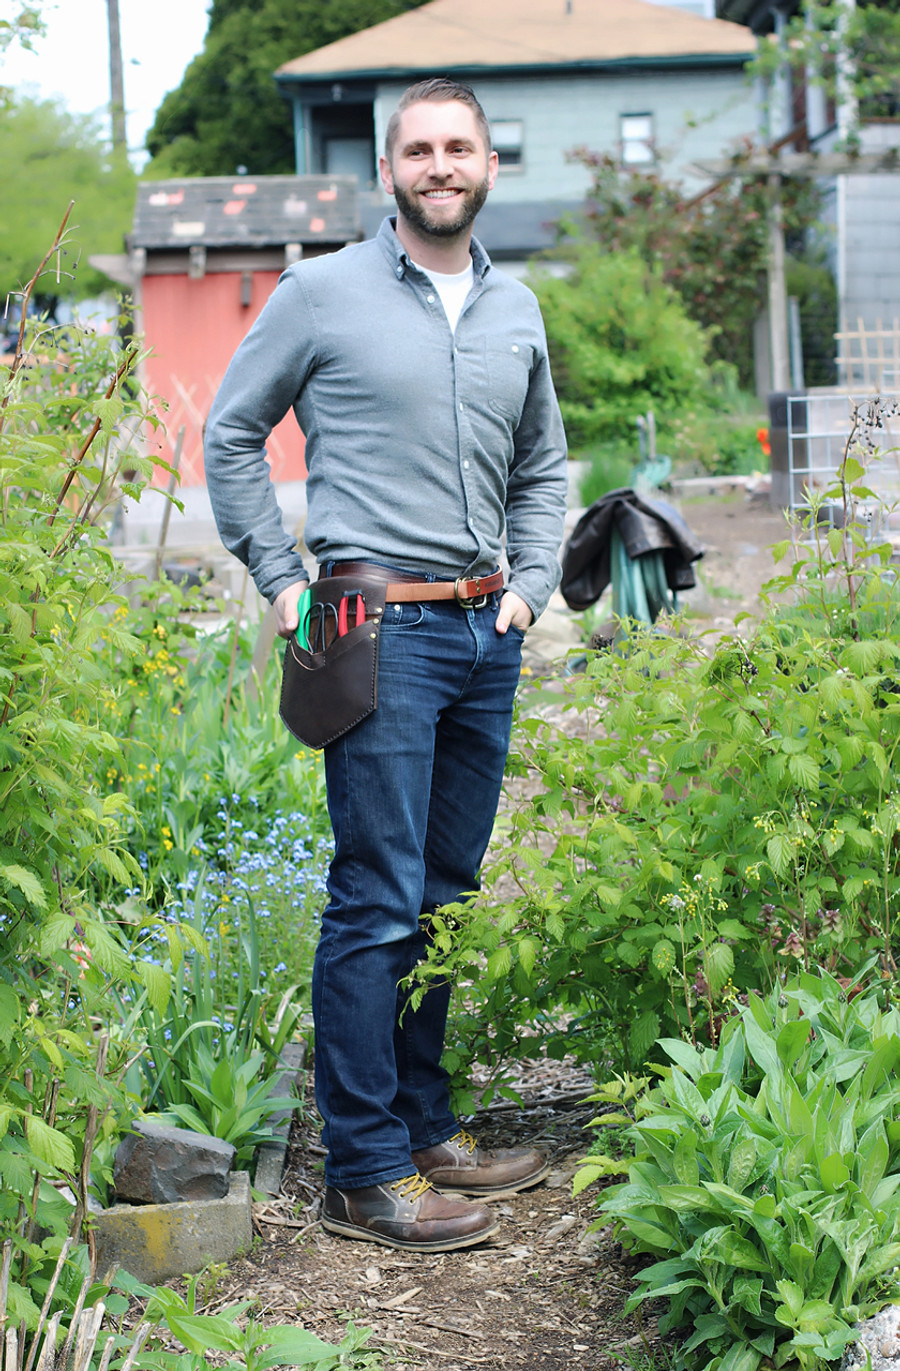 Seattle Seed Co. founder Sander wearing his Harvest Essentials belt.